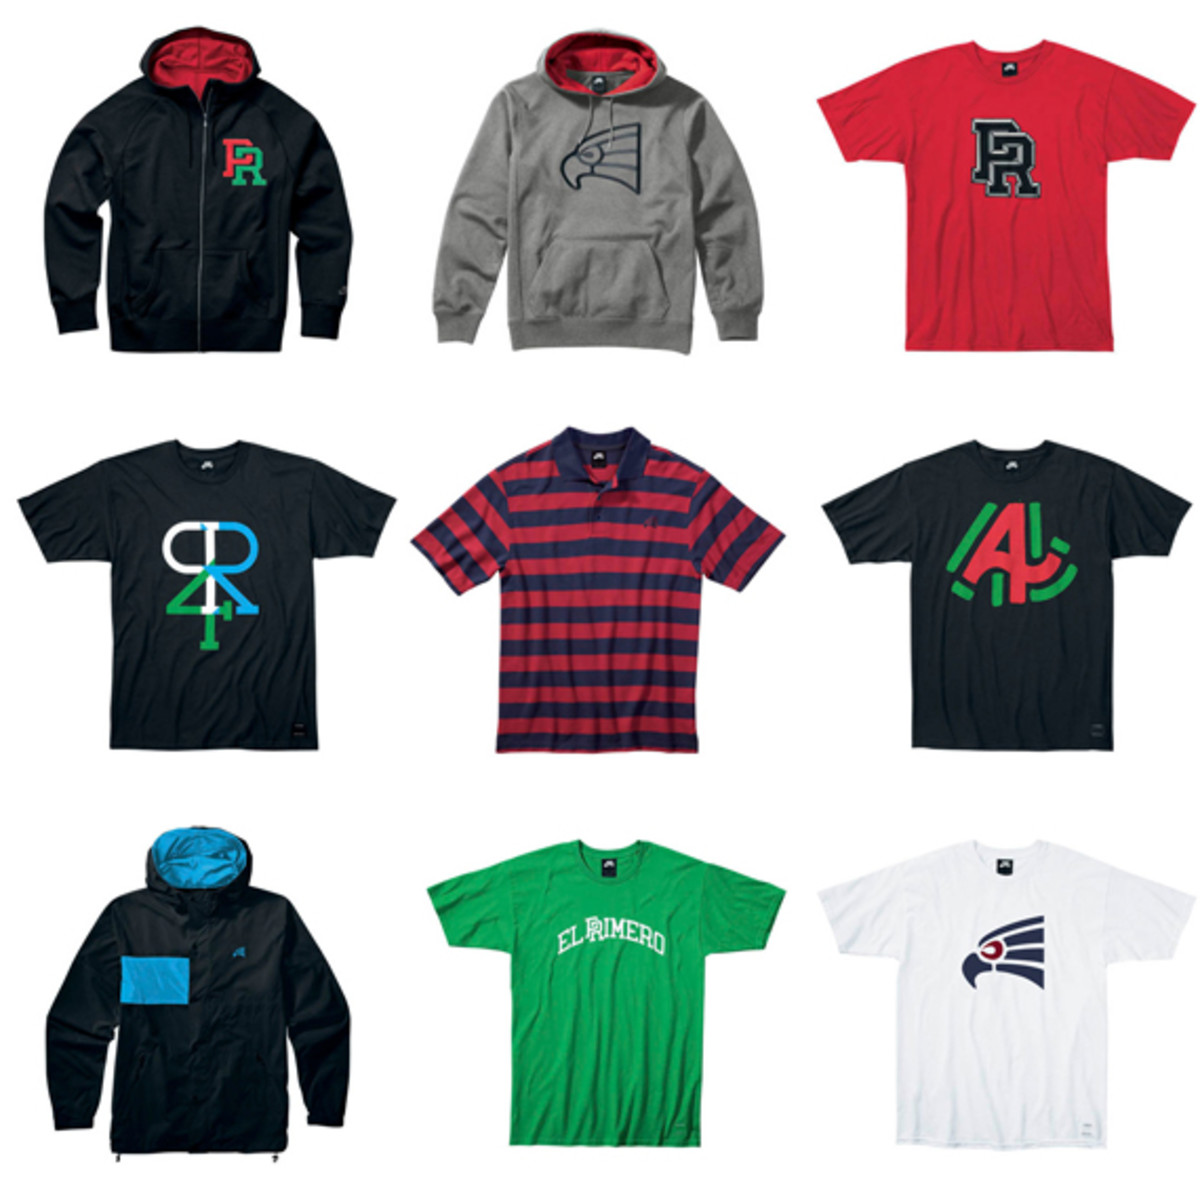 p-rod-apparel-collection